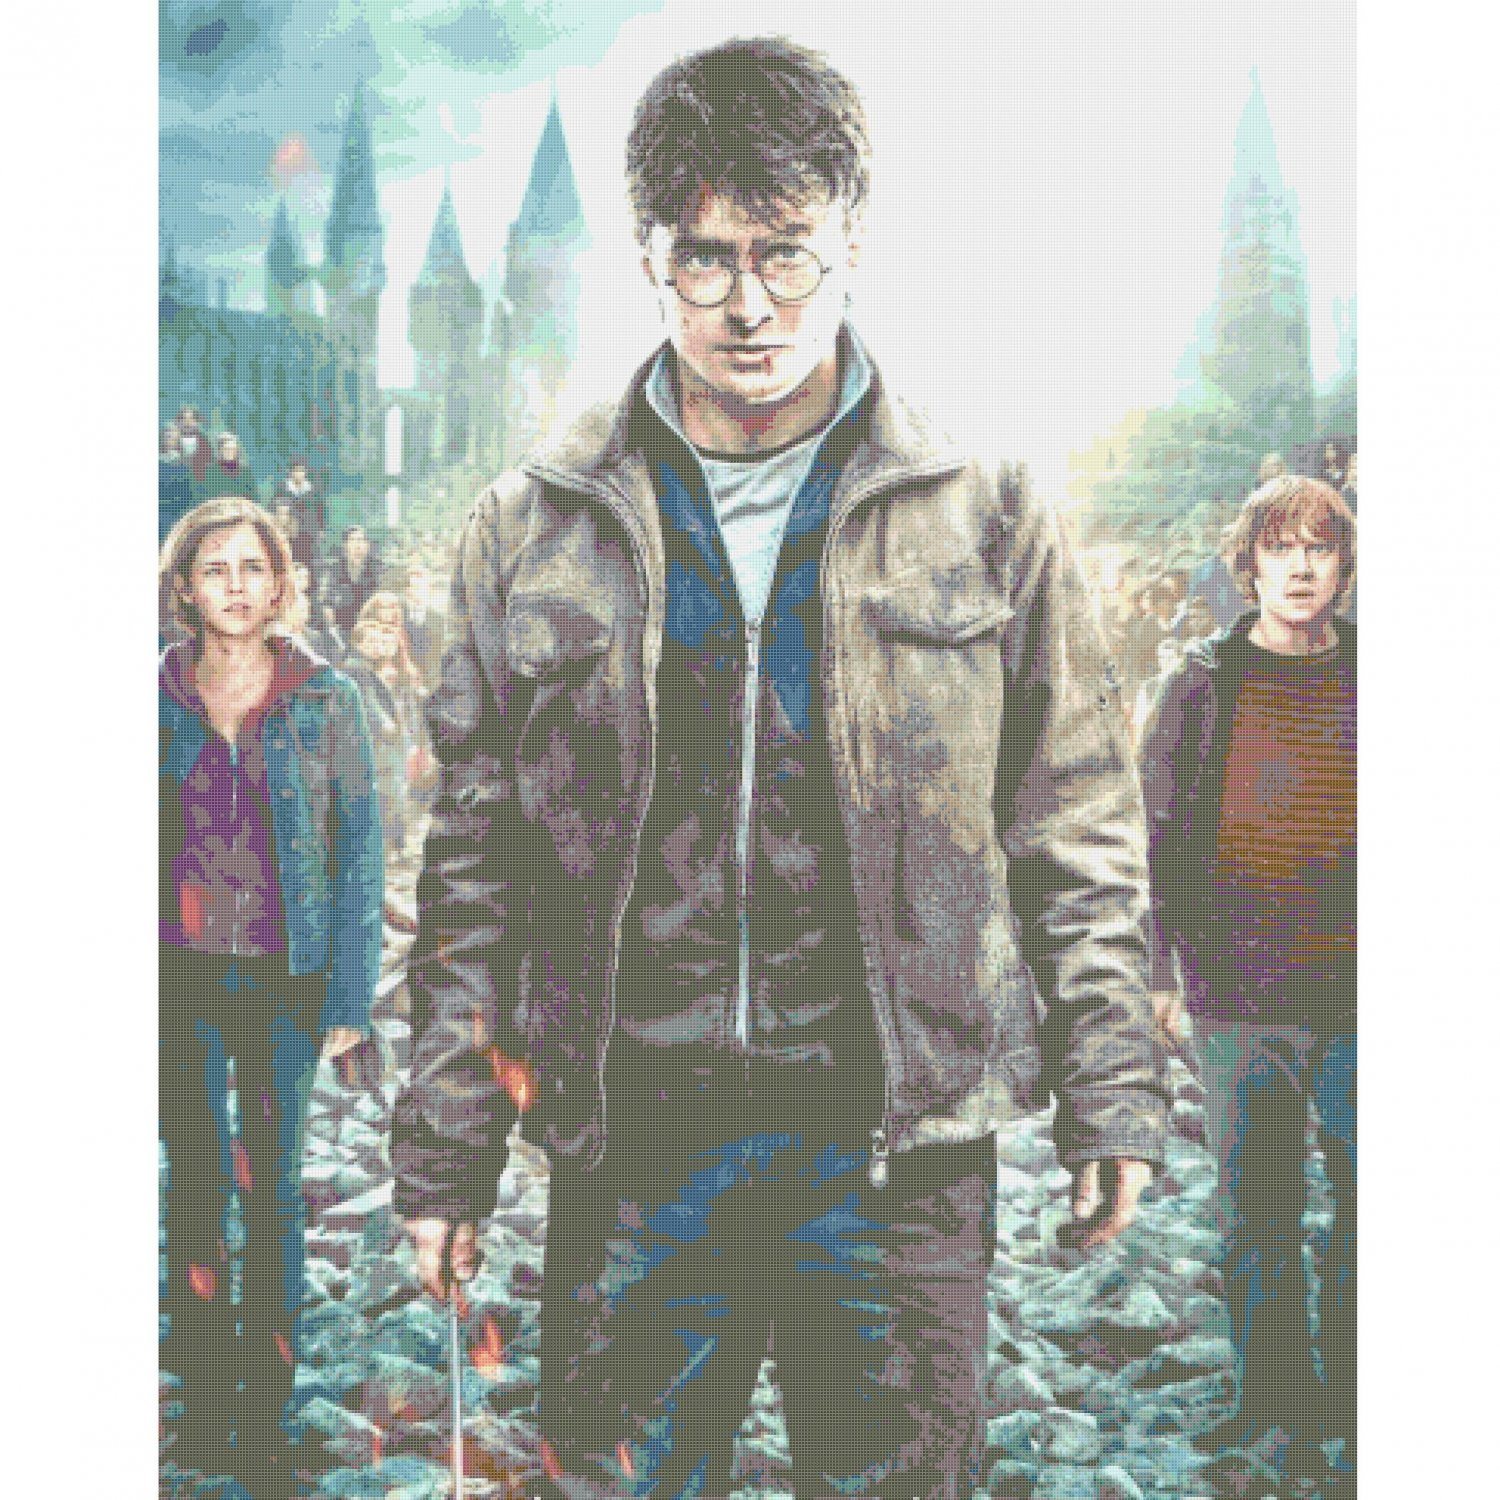 Counted Cross Stitch Pattern Harry Potter It all ends 386x483 stitches E155